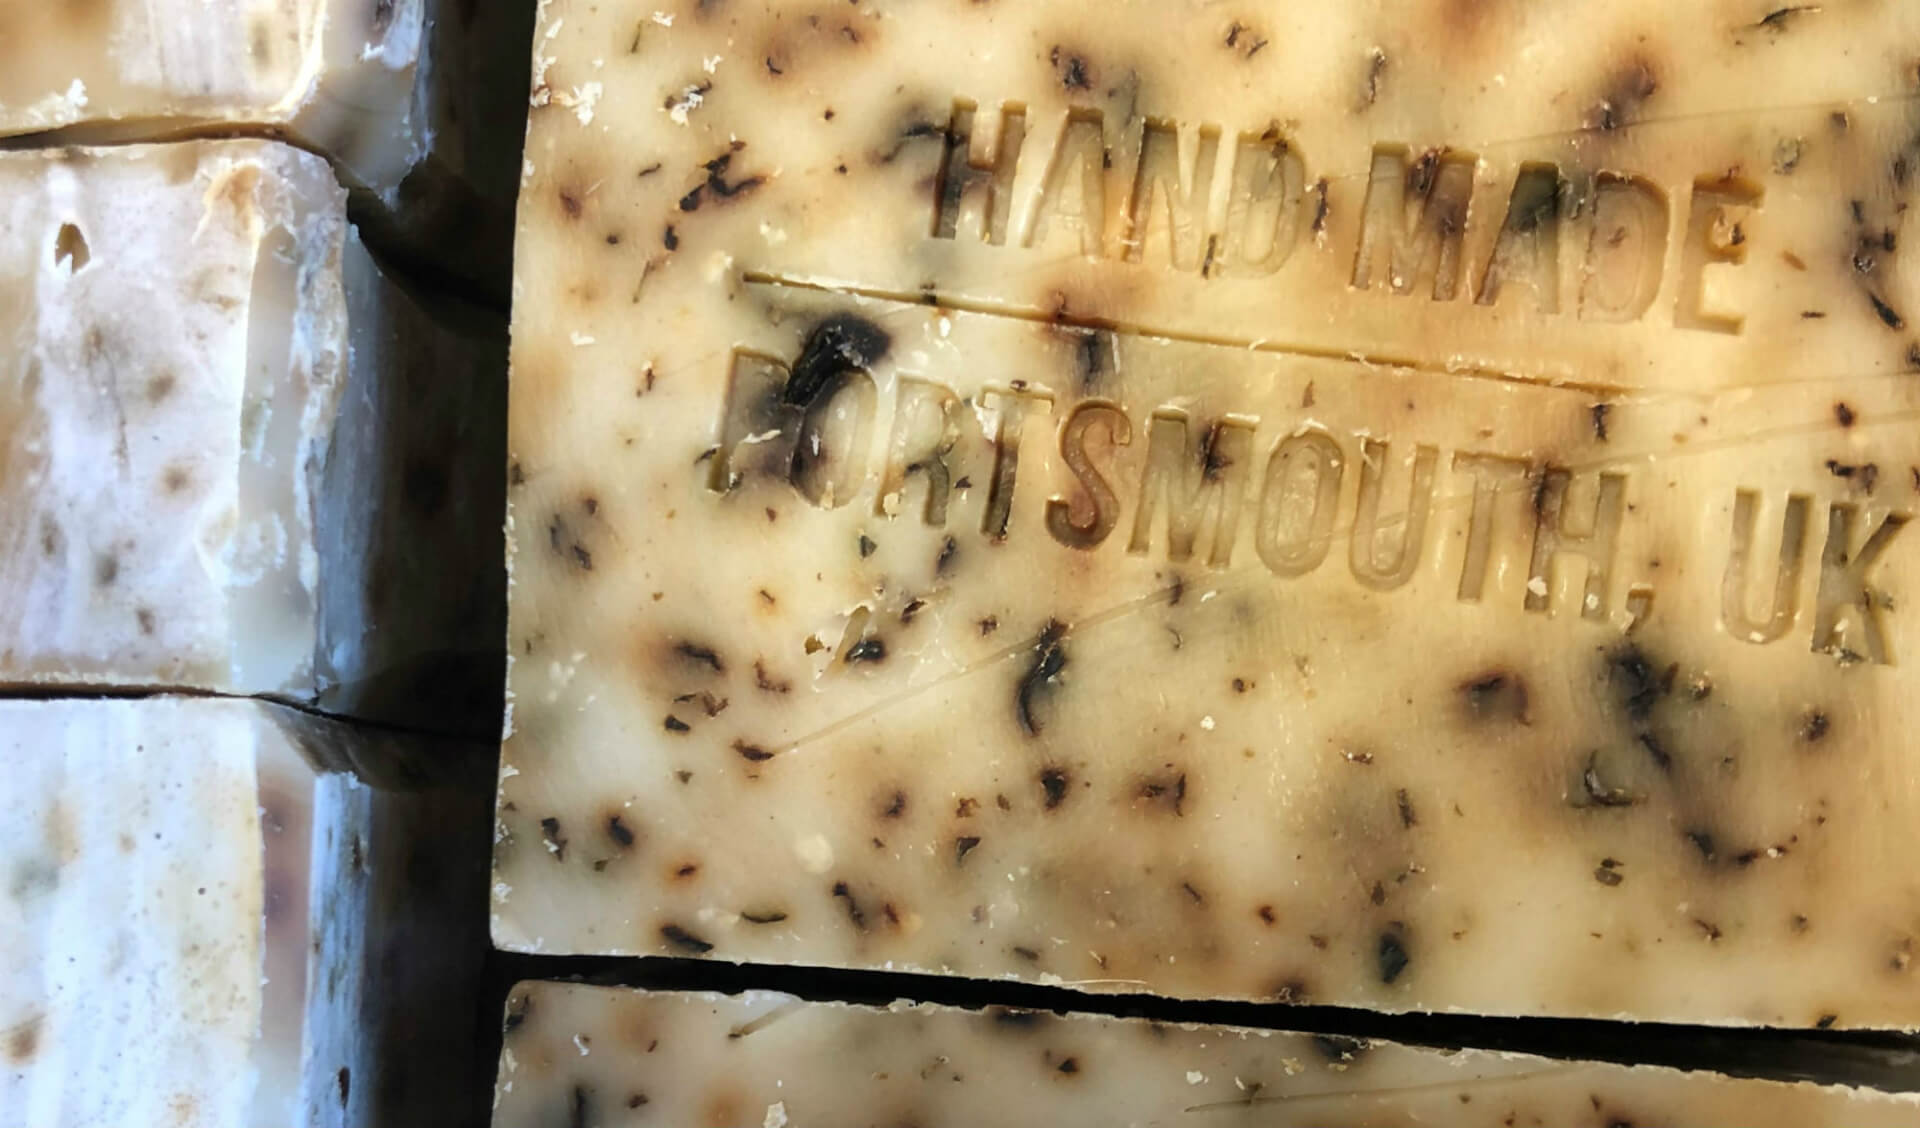 A close up of a number of soap bars embossed with the lettering 'Hand Made Portsmouth, UK'